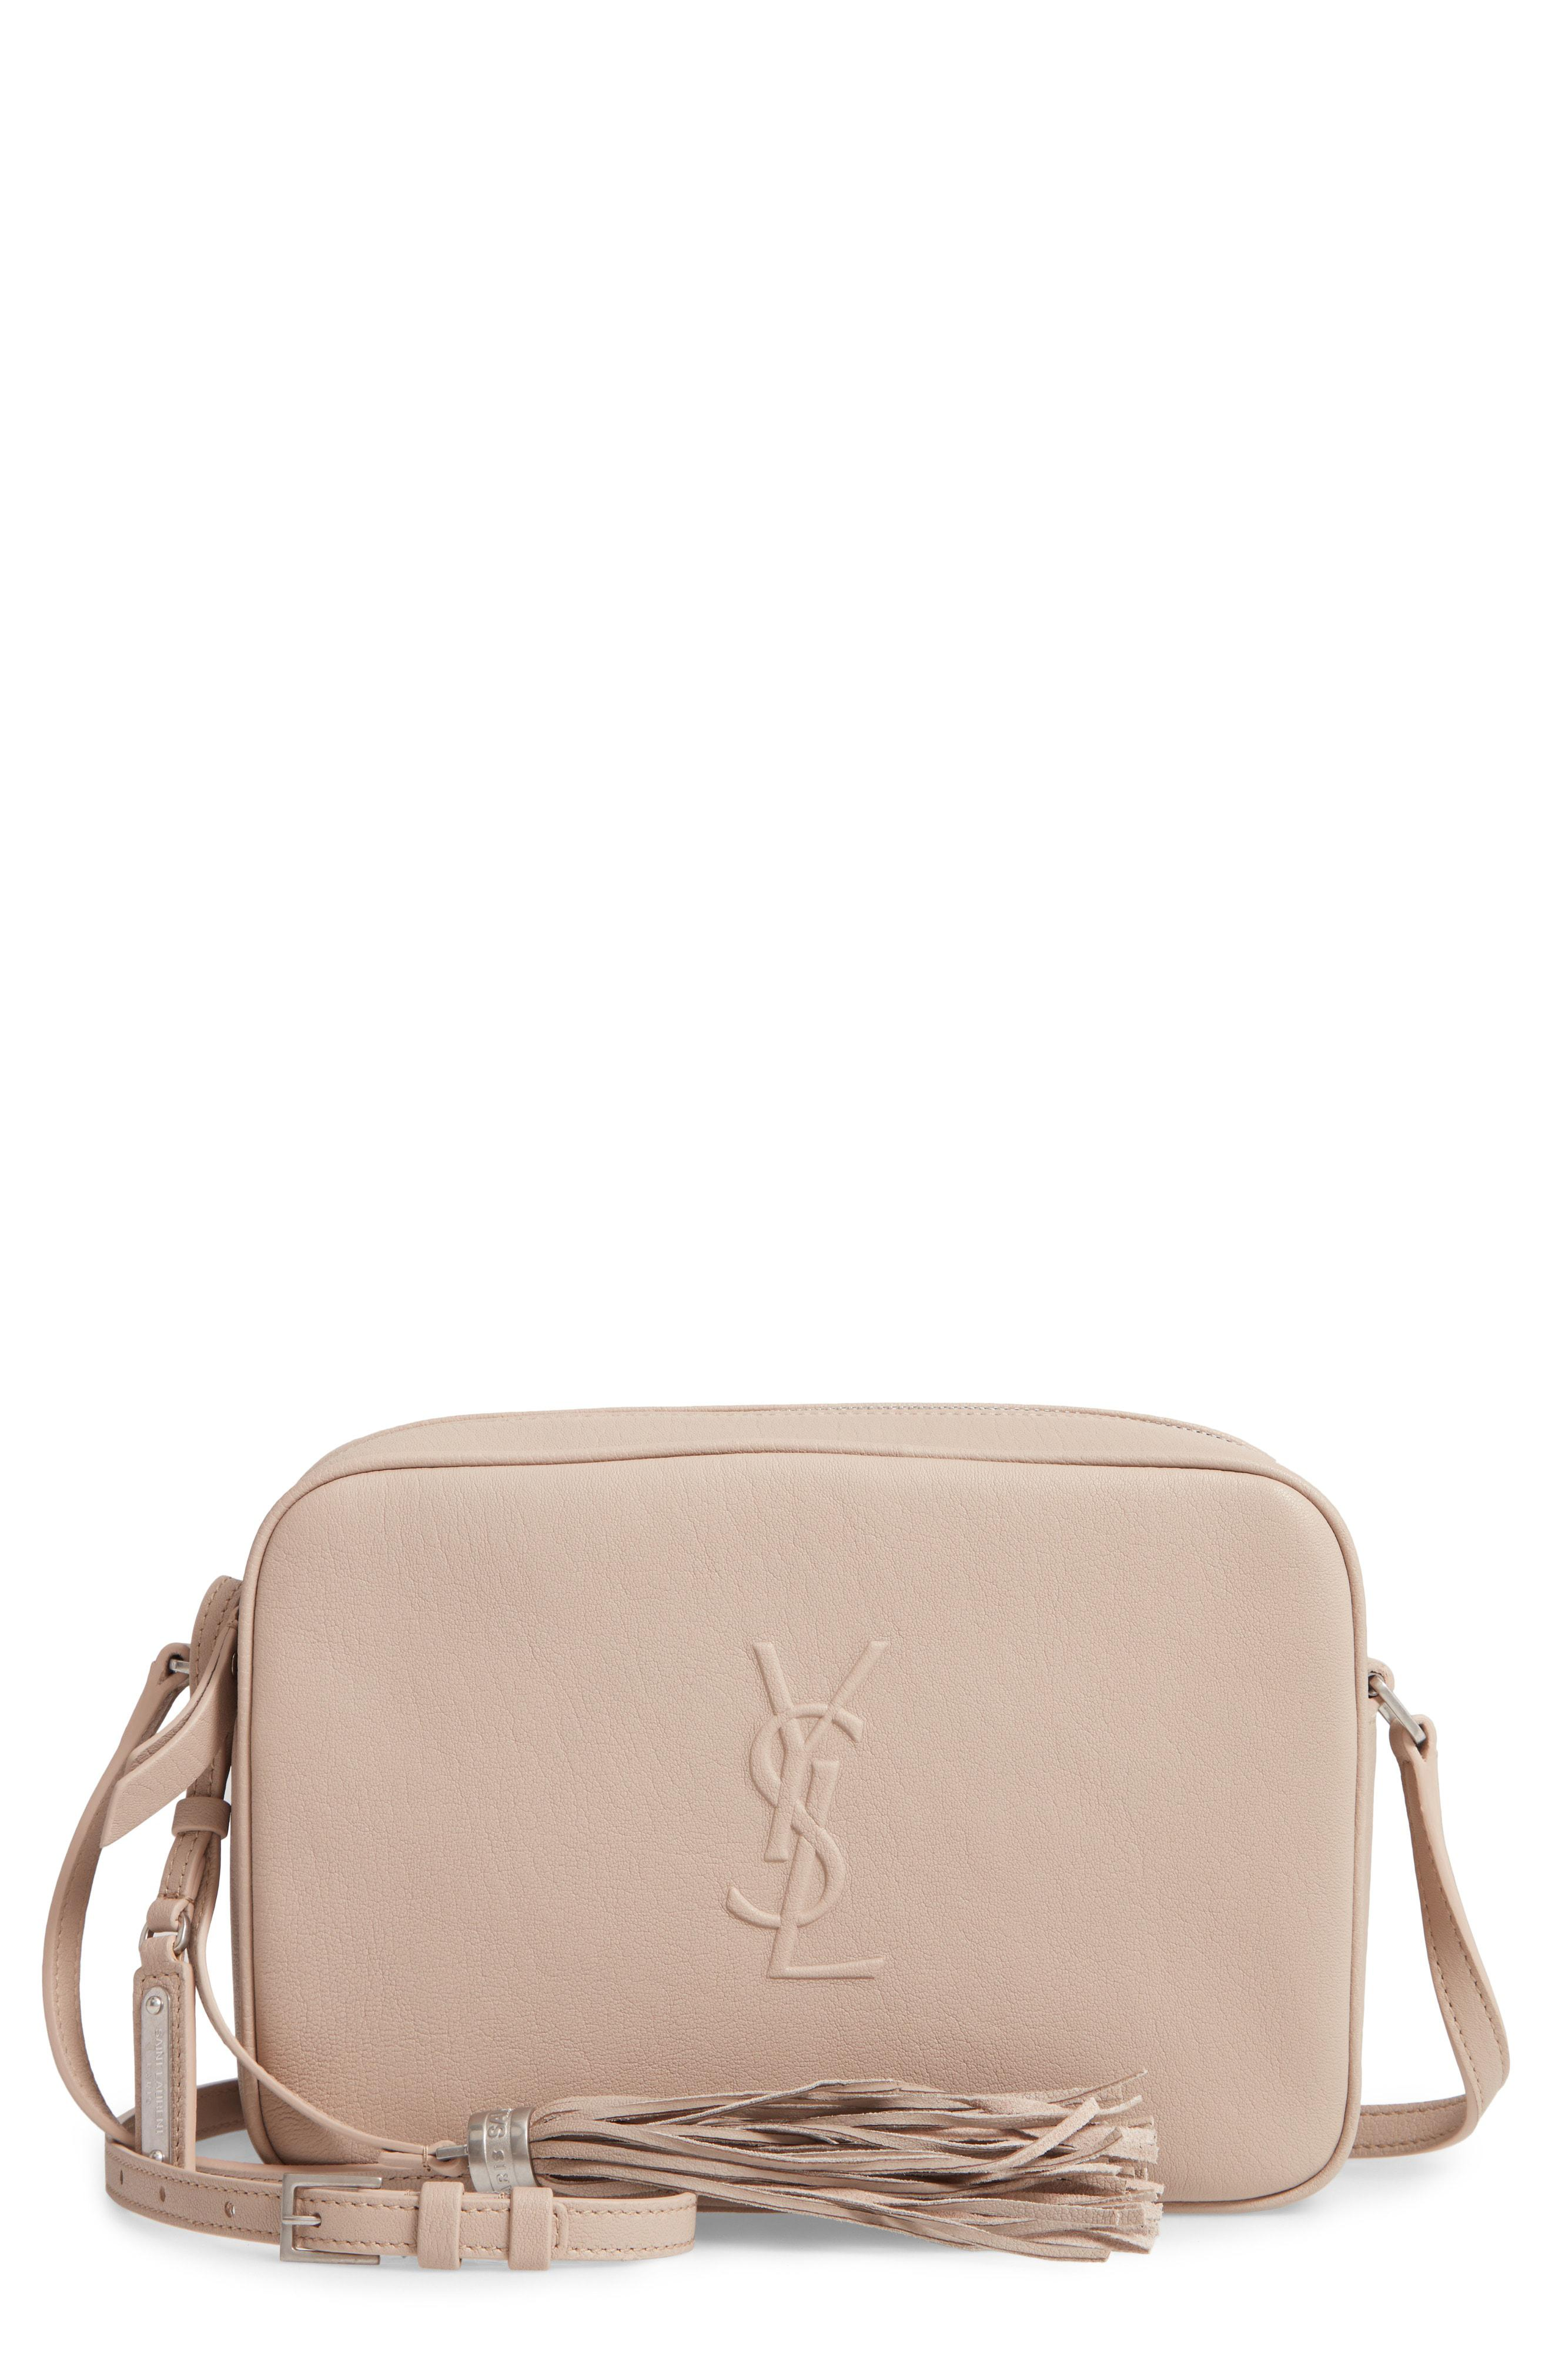 7e80a8099b Lyst - Saint Laurent Small Mono Leather Camera Bag -